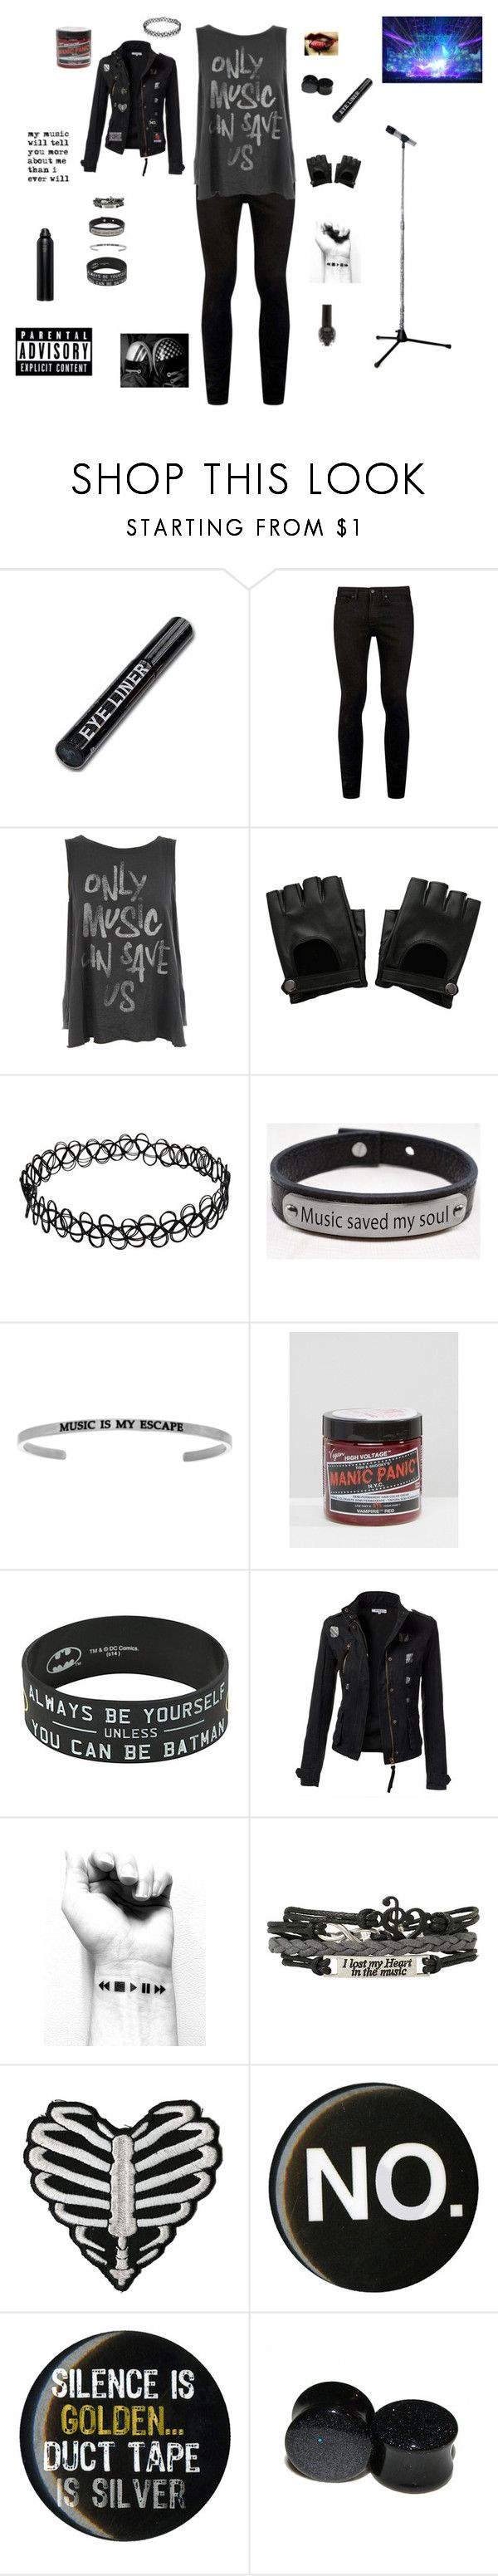 """You'll Never Take Me Alive, Do What It Takes To Survive Cause I'm Still Here"" by falloutromanceandthecellabration ❤ liked on Polyvore featuring Topman, Junk Food Clothing, Hot Topic, Pink Box, Manic Panic NYC and Oribe"